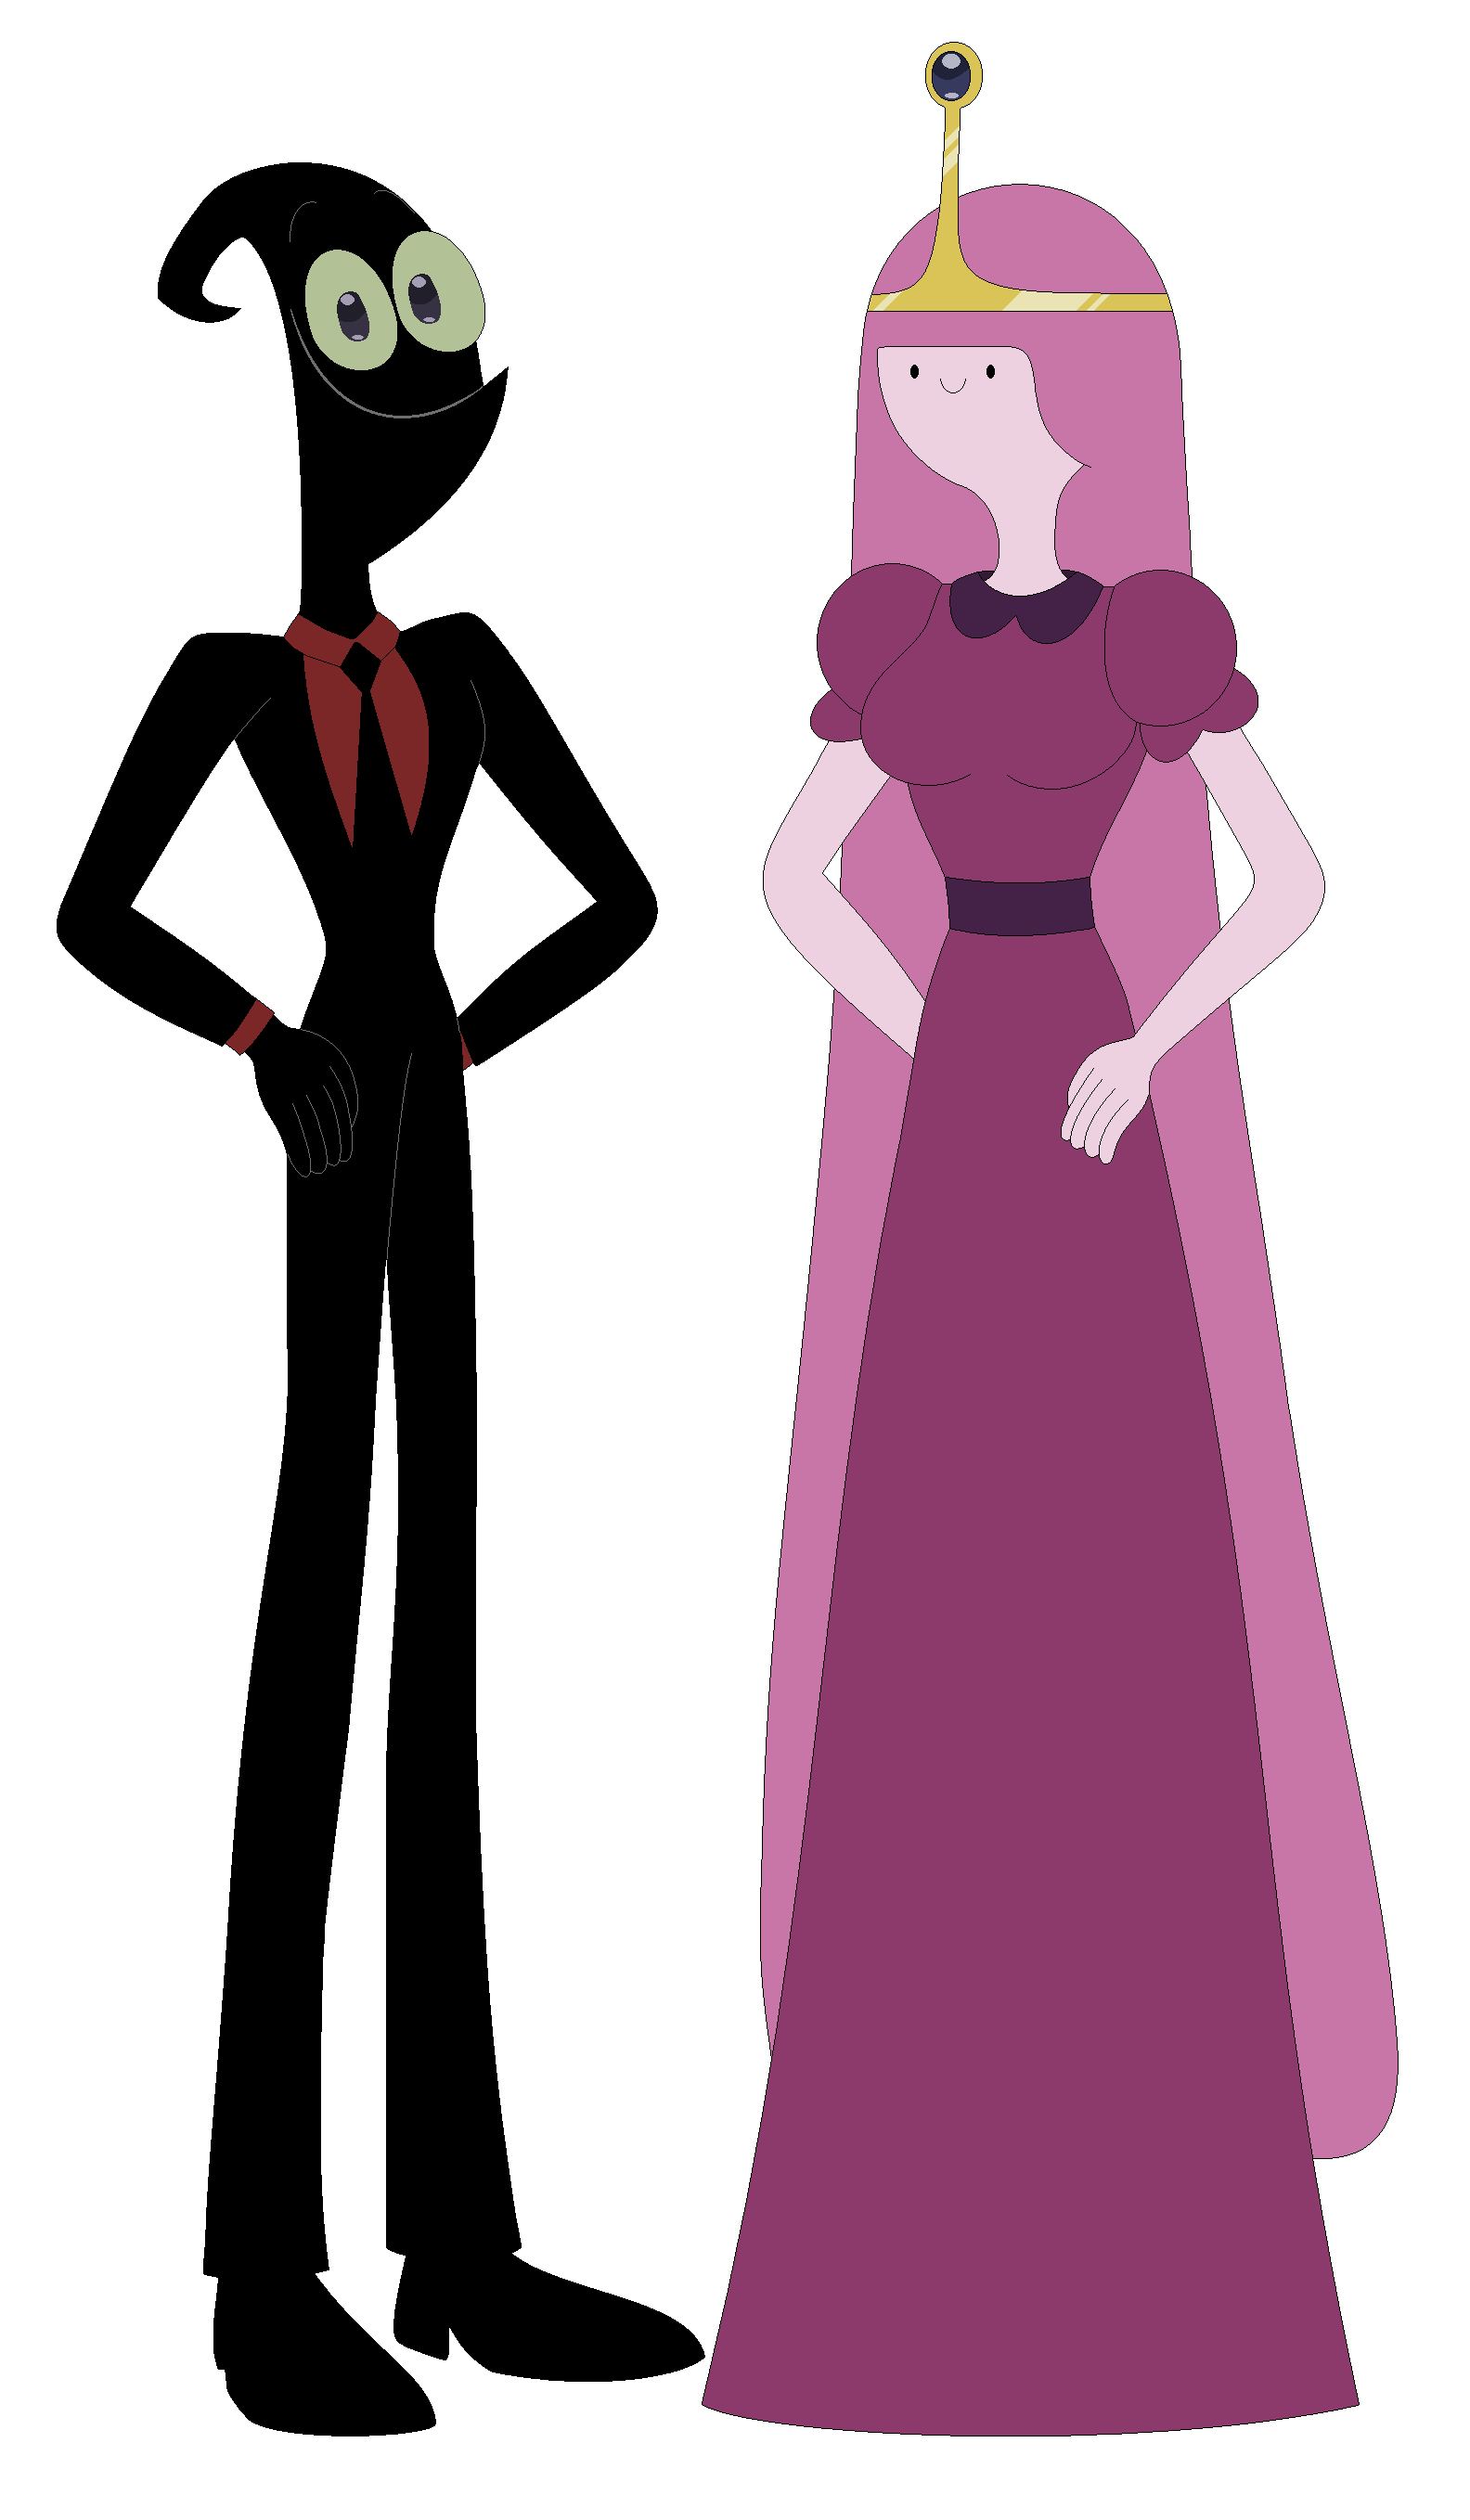 Nergal And Princess Bubblegum Standing Pose Bubblegal Cartoon Network 2019 Art By Nathaniel Princess Bubblegum Standing Poses Aurora Sleeping Beauty